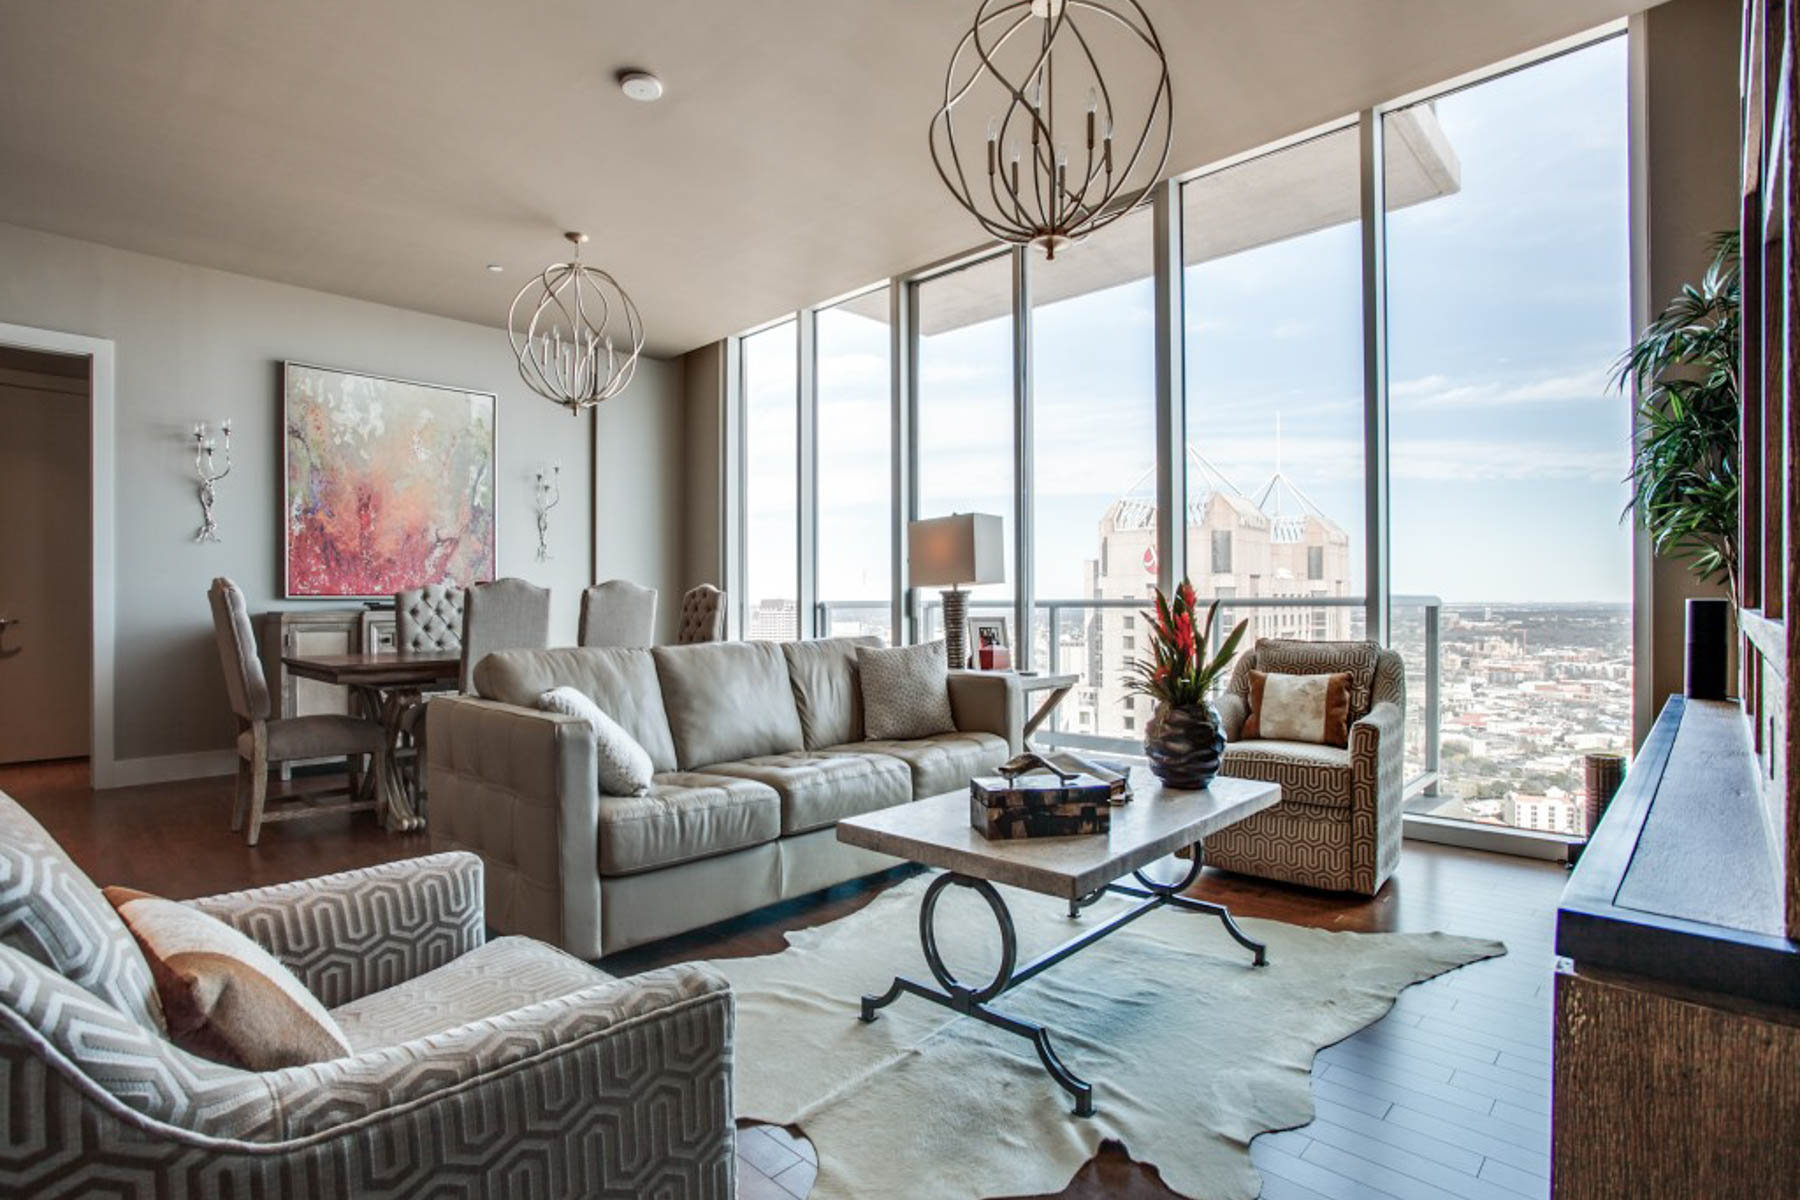 Condominium for Rent at Sophisticated Condo with Downtown Views 610 E Market St 3214 San Antonio, Texas 78205 United States